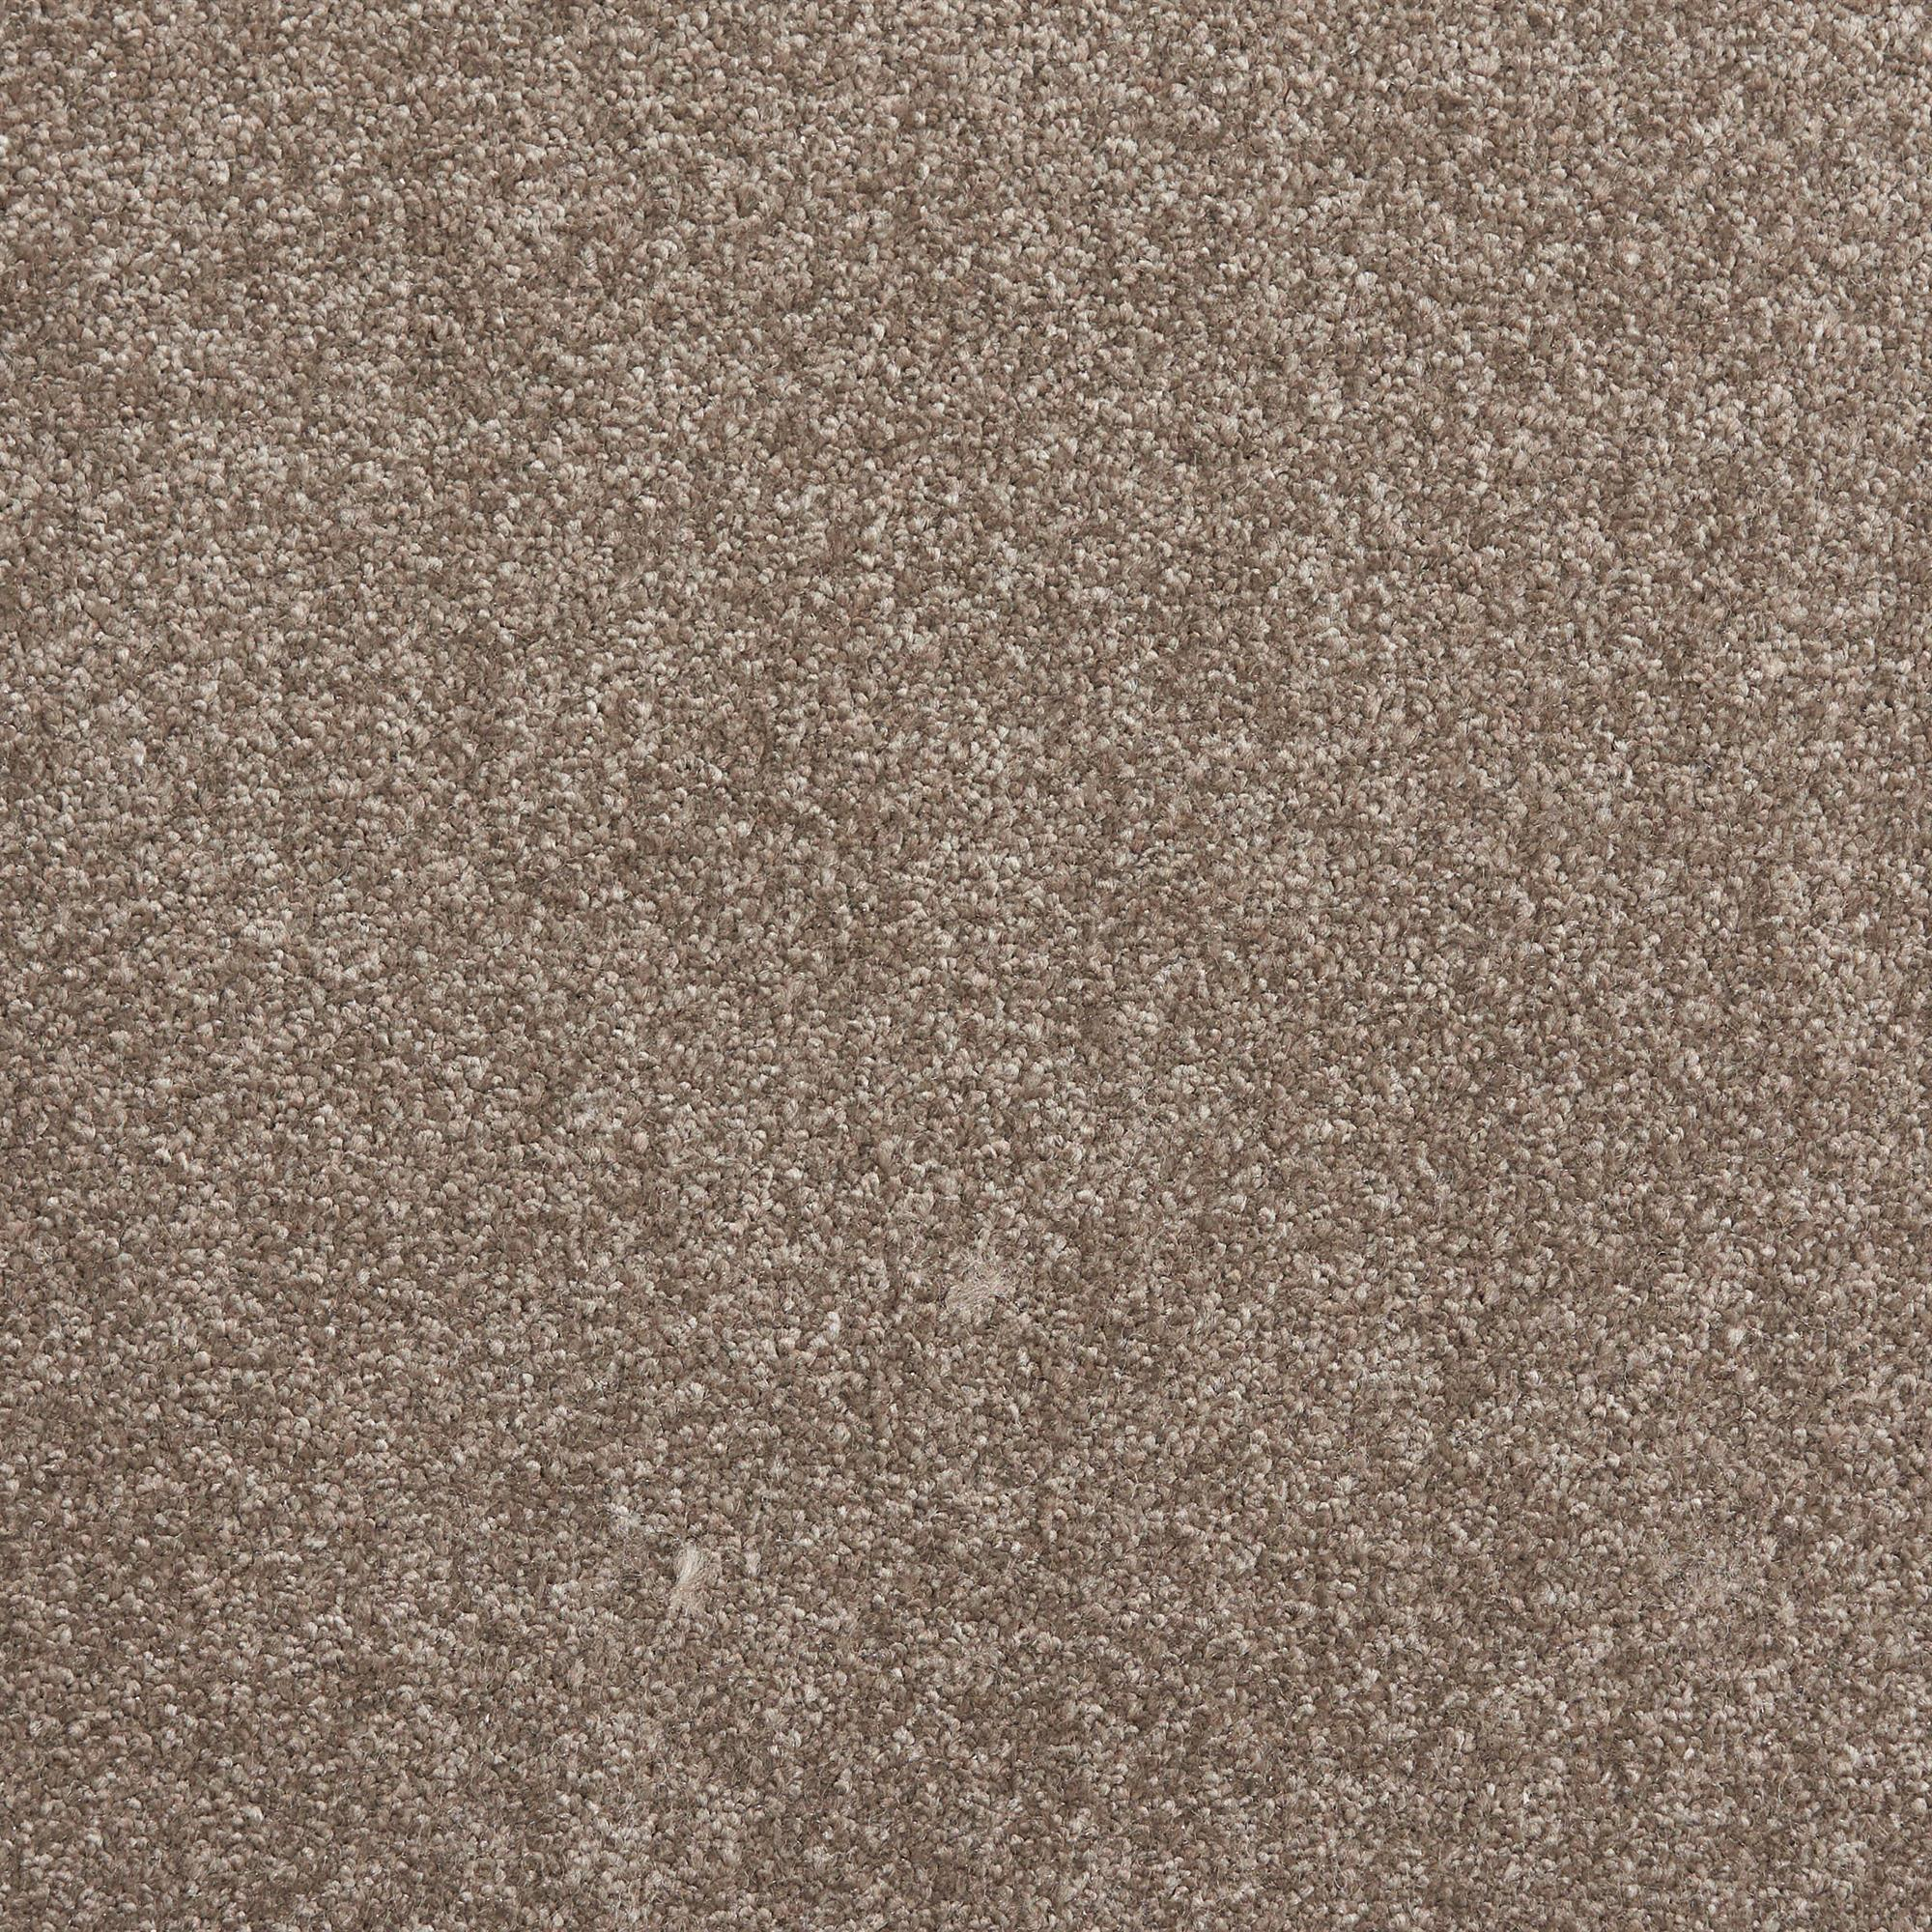 Living Crofthouse Carpet, 01 Reserve, swatch